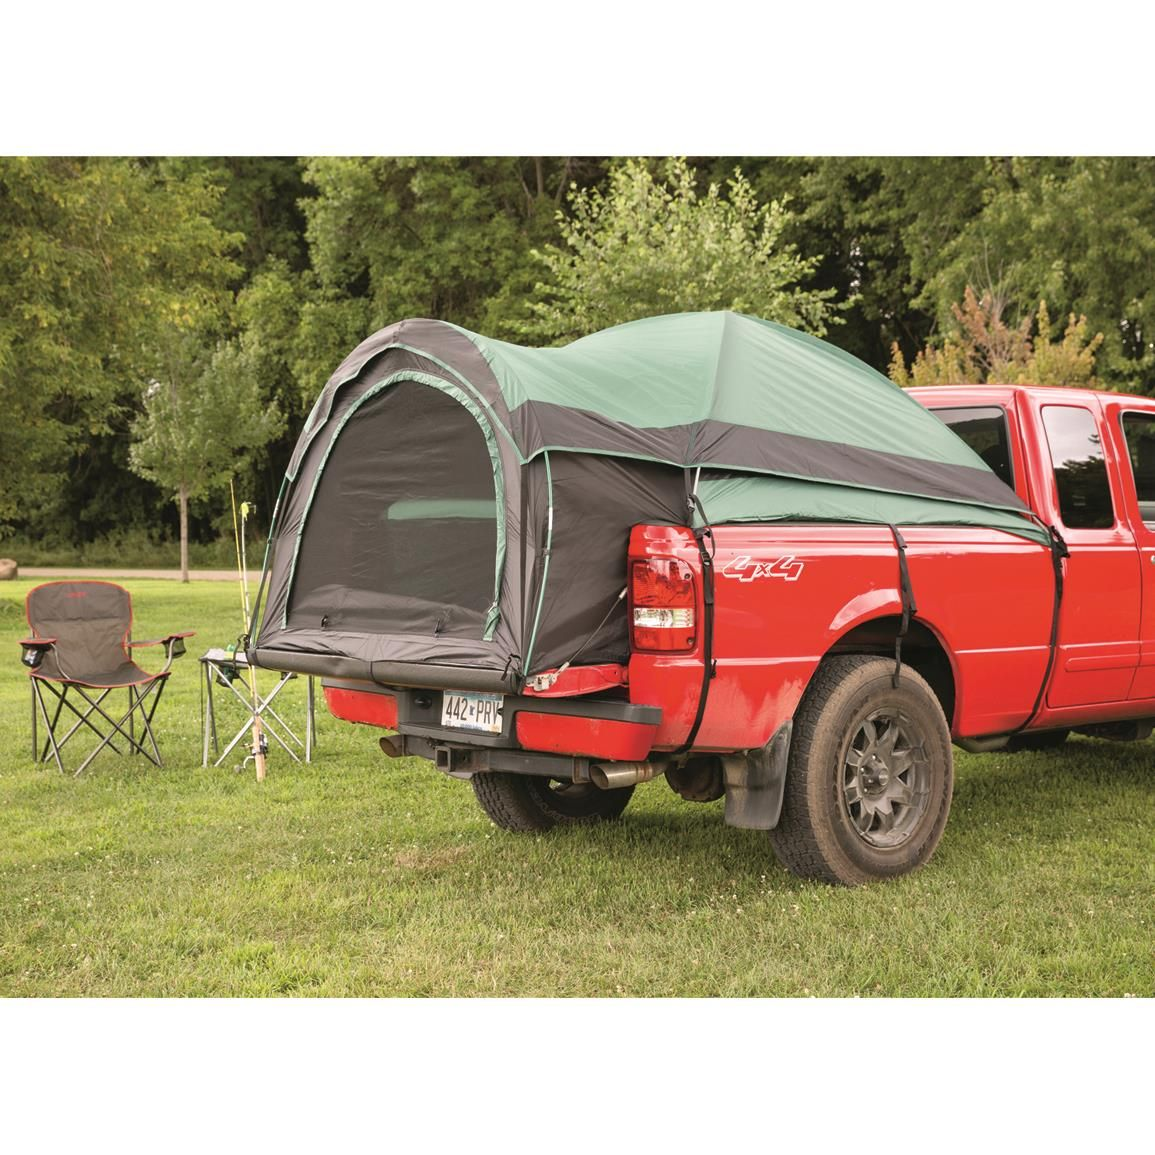 Awesome car set up to keep off the ground when camping